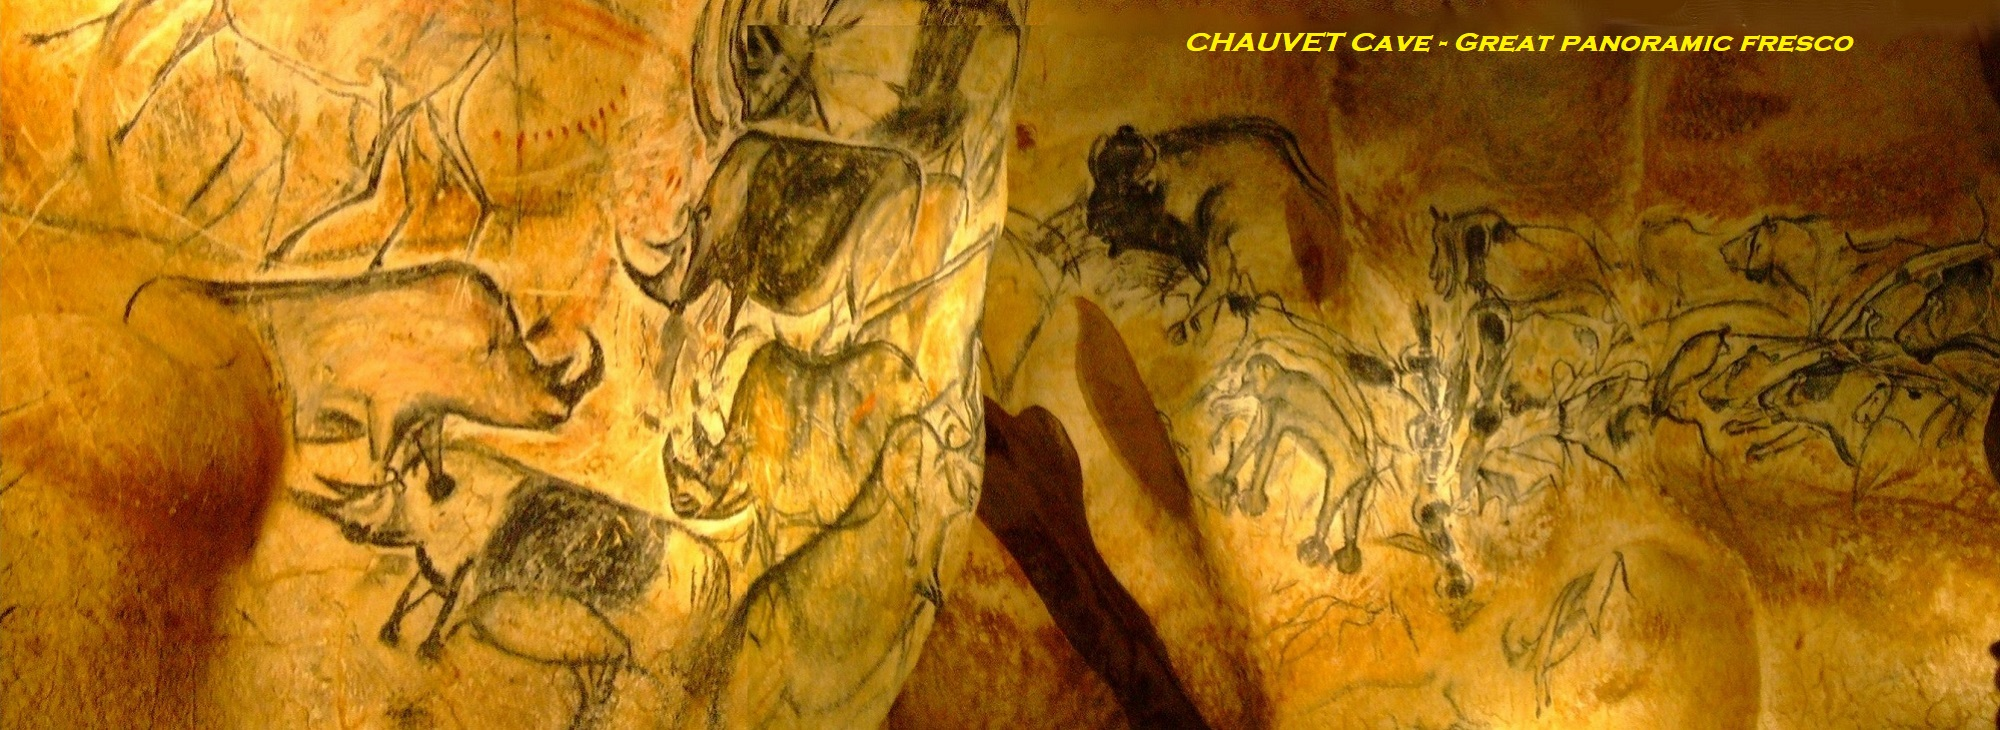 Chauvet Cave - Great Panoramic Fresco